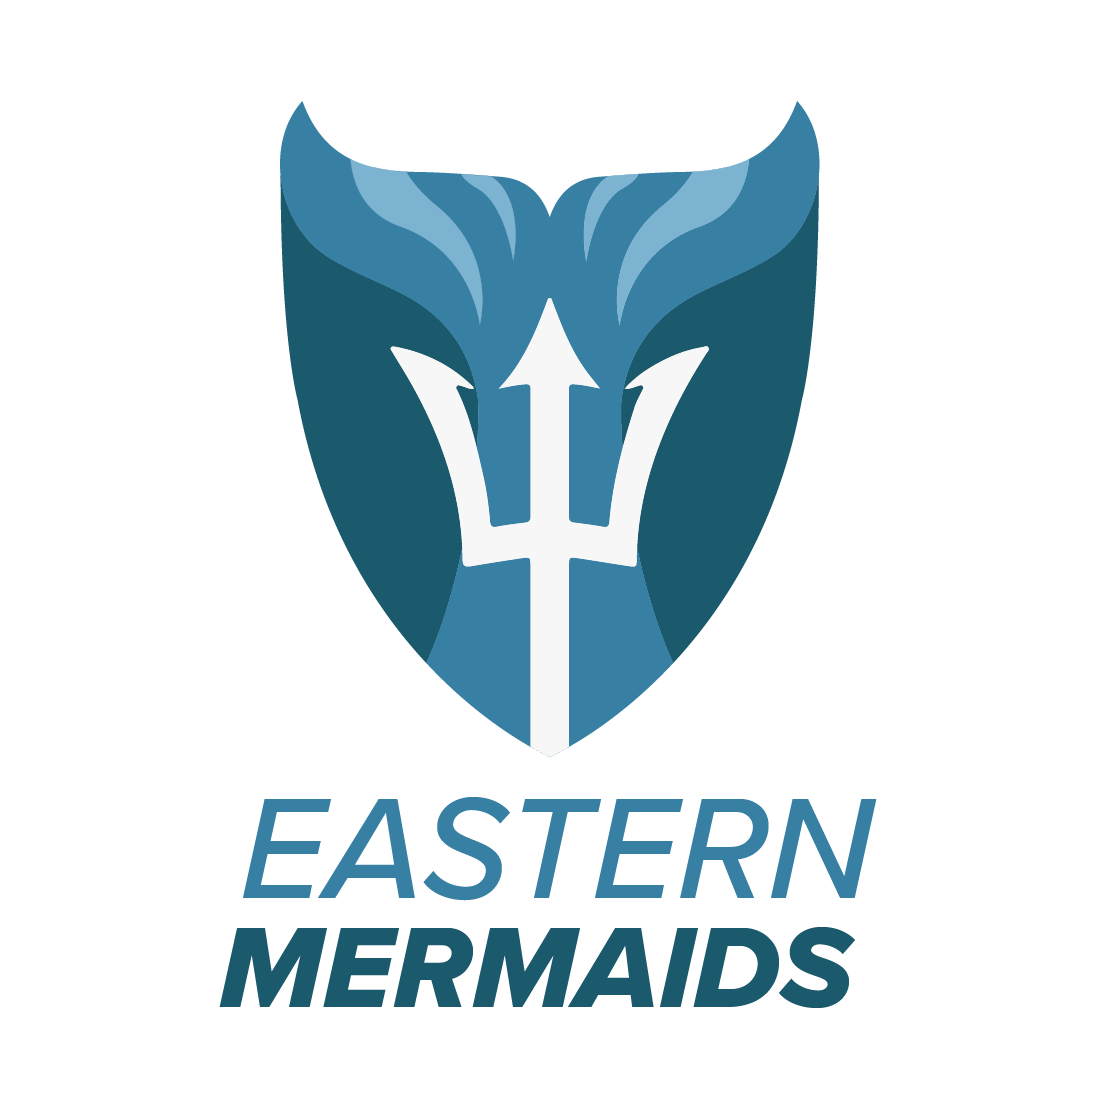 Eastern Mermaids